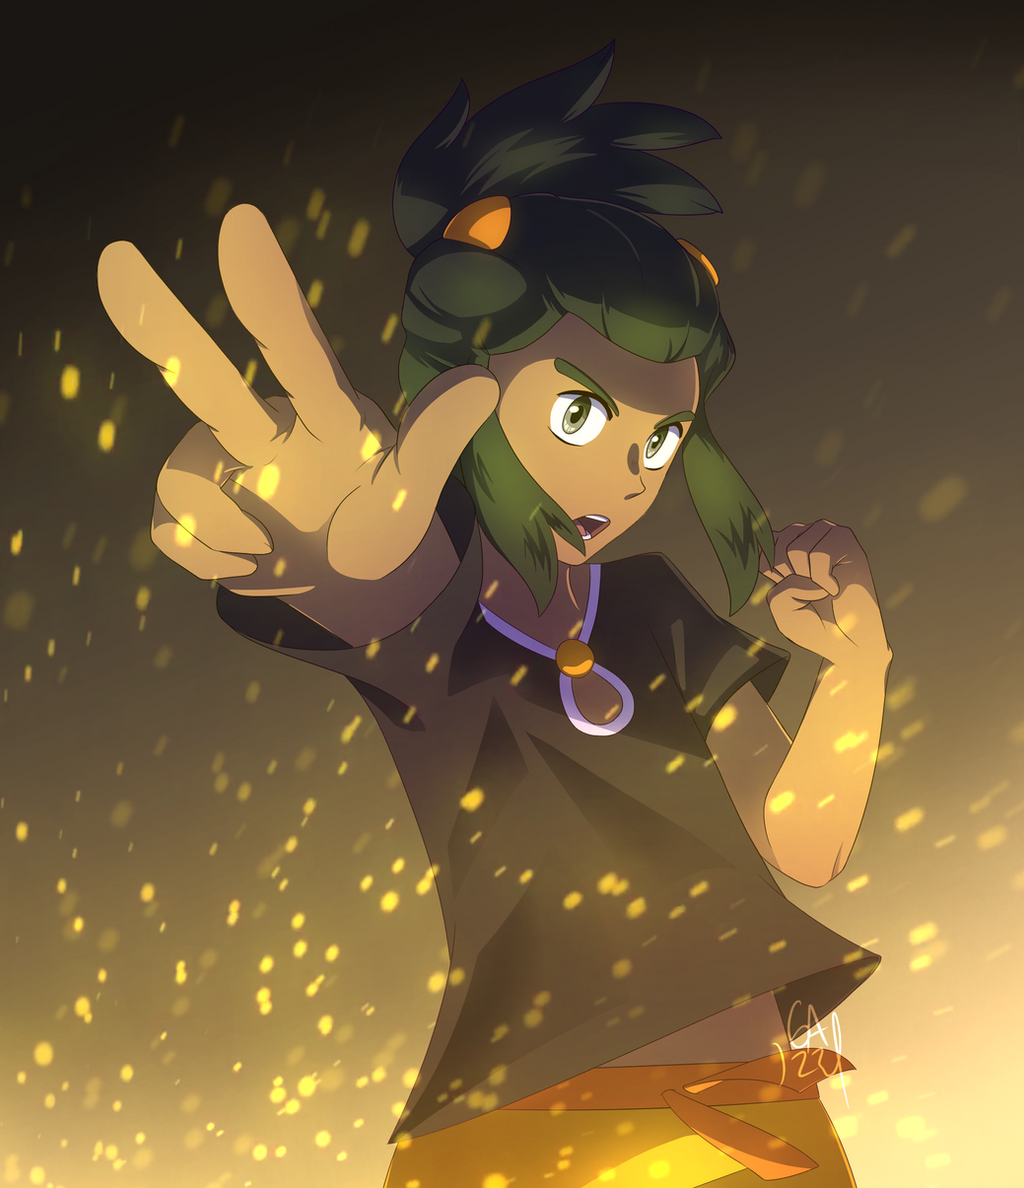 You are challenged by Pokemon Trainer Hau! by Gameaddict1234